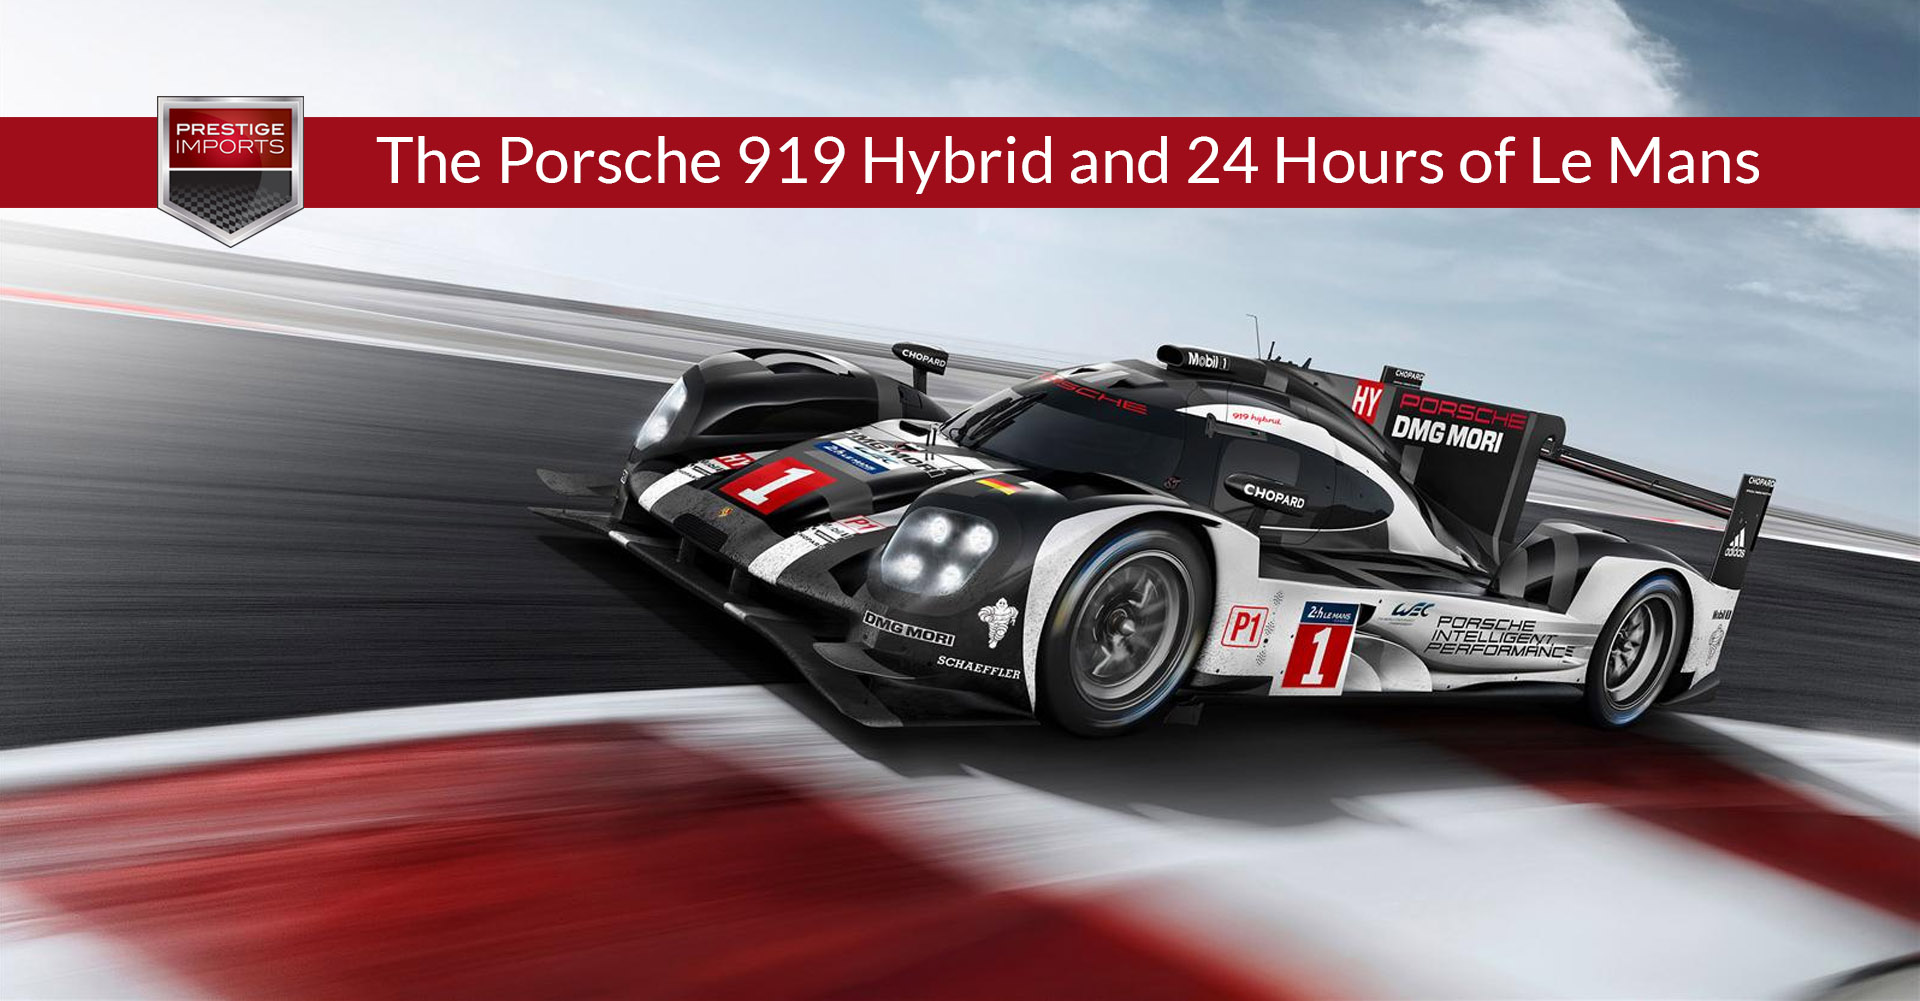 the porsche 919 hybrid and 24 hours of le mans jpg